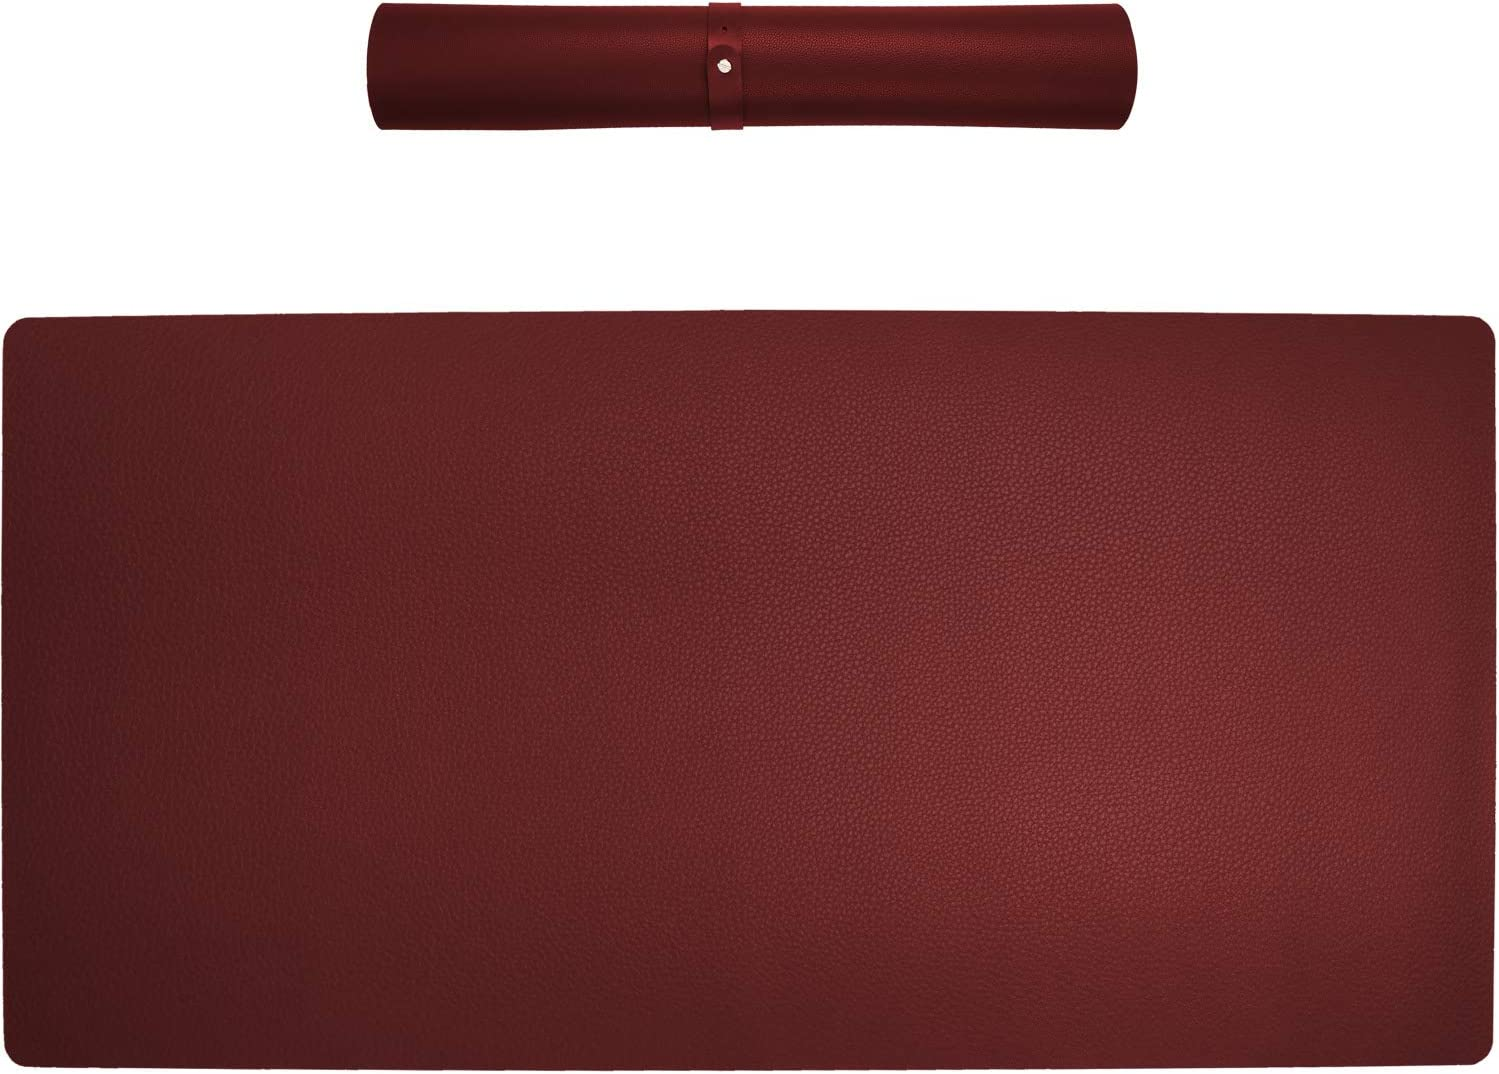 """Multifunctional Office Large Desk Pads Desktop Cover Mat,Waterproof PU Leather Protective Laptop Pads,Dual Use Writing Gaming Typing Blotters Mouse Pad Mats for Office or Home,35.5""""x16.9""""(Claret-Red)"""